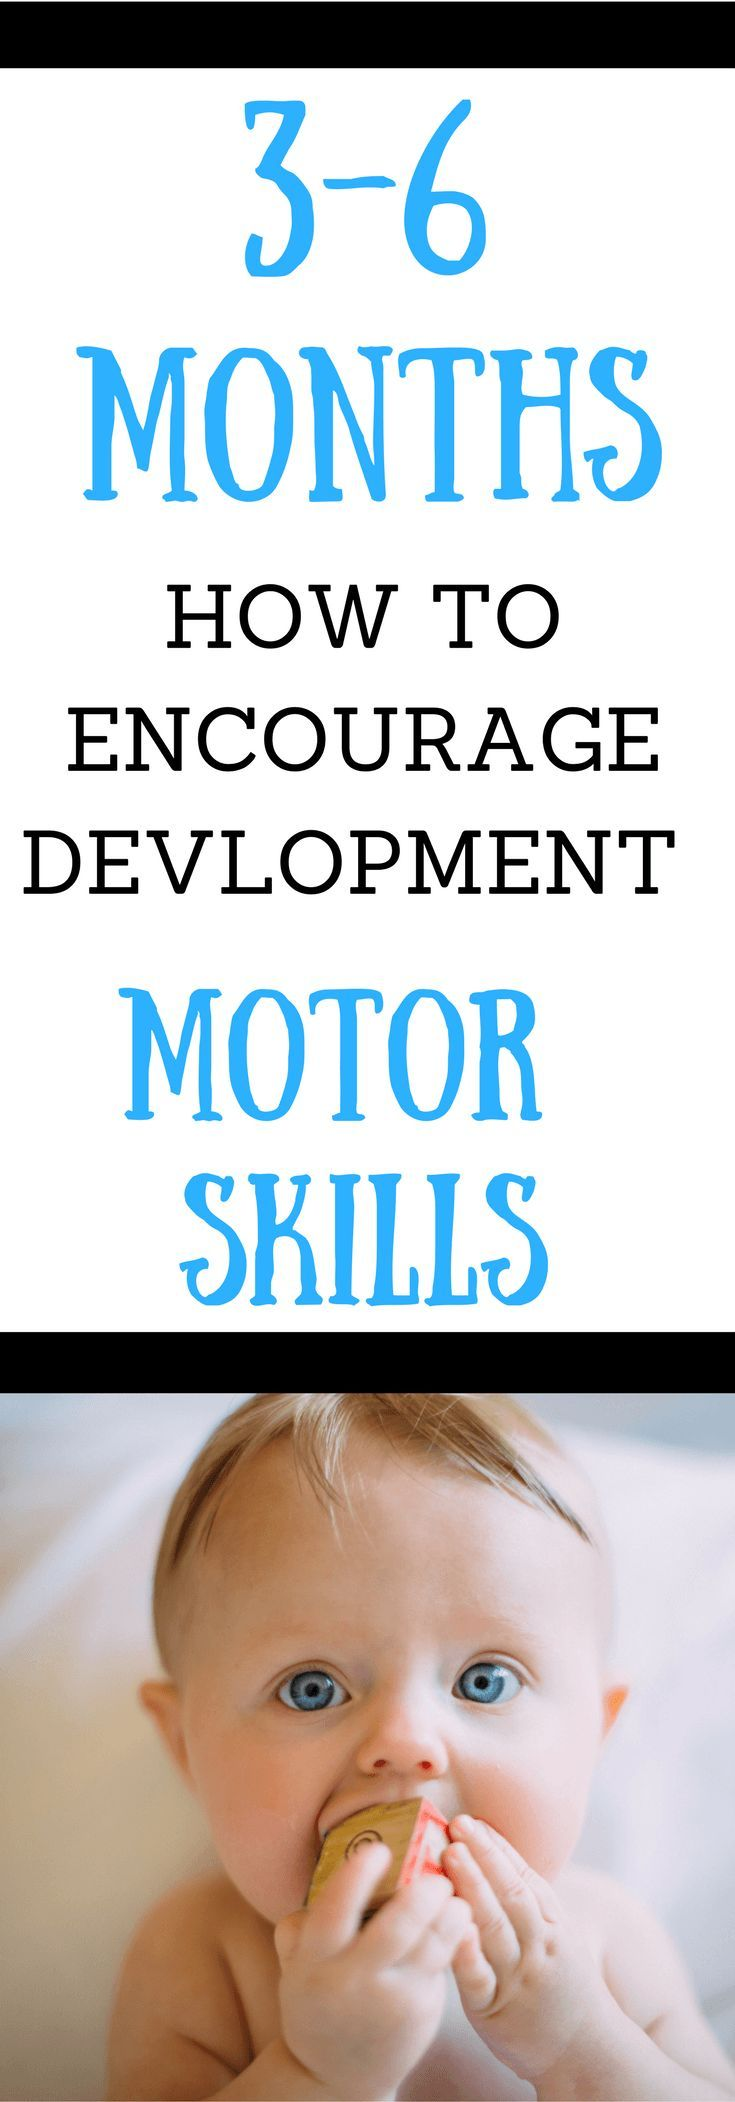 Infant Milestones All You Need To Know About Motor Skills For Babies 3 6